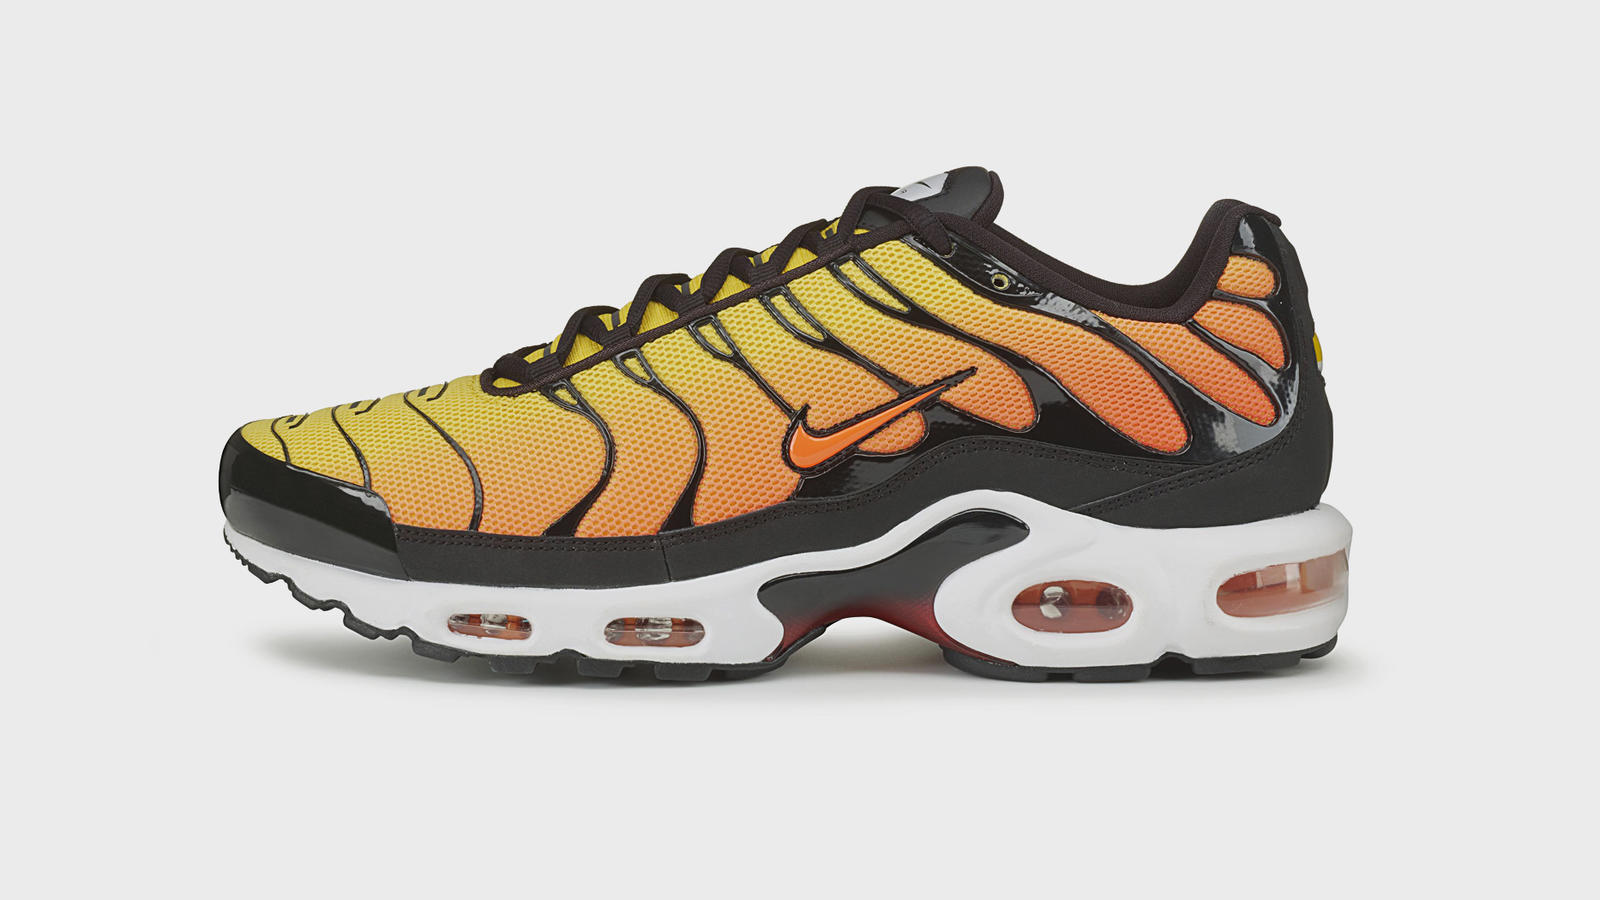 nike air max plus black red green yellow car